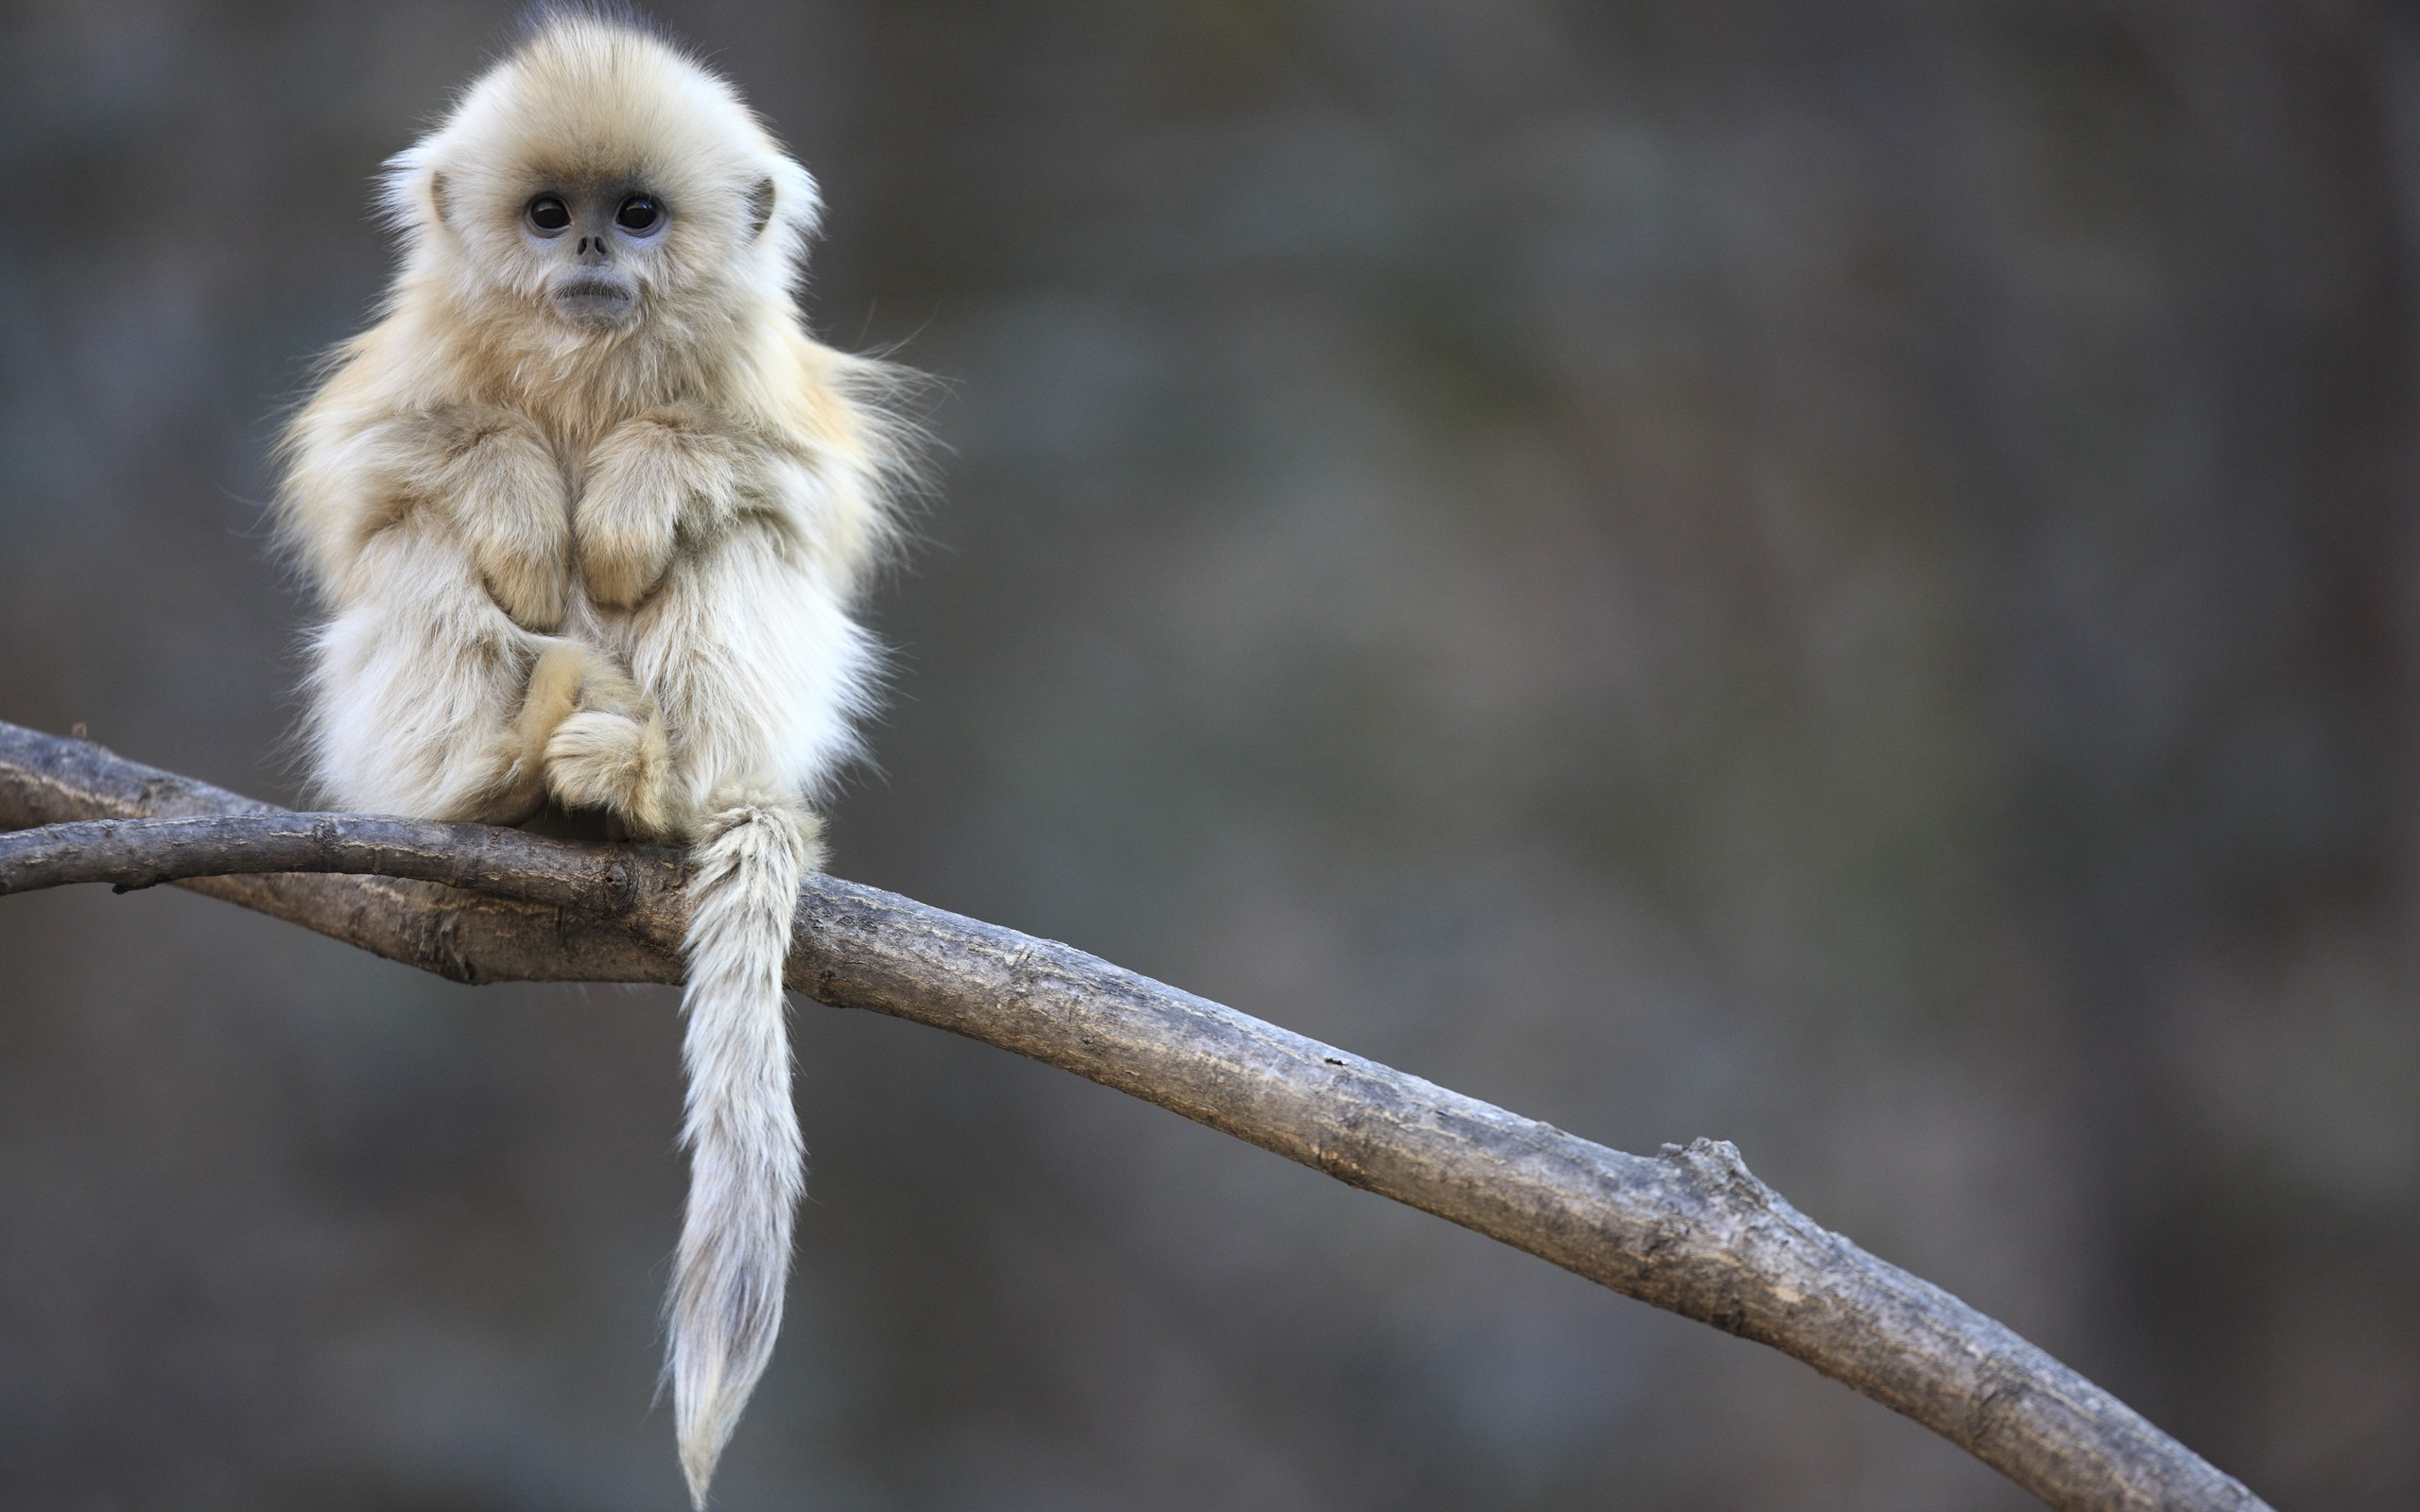 Snub Nosed Monkey Baby Wallpaper 2560x1600 2127